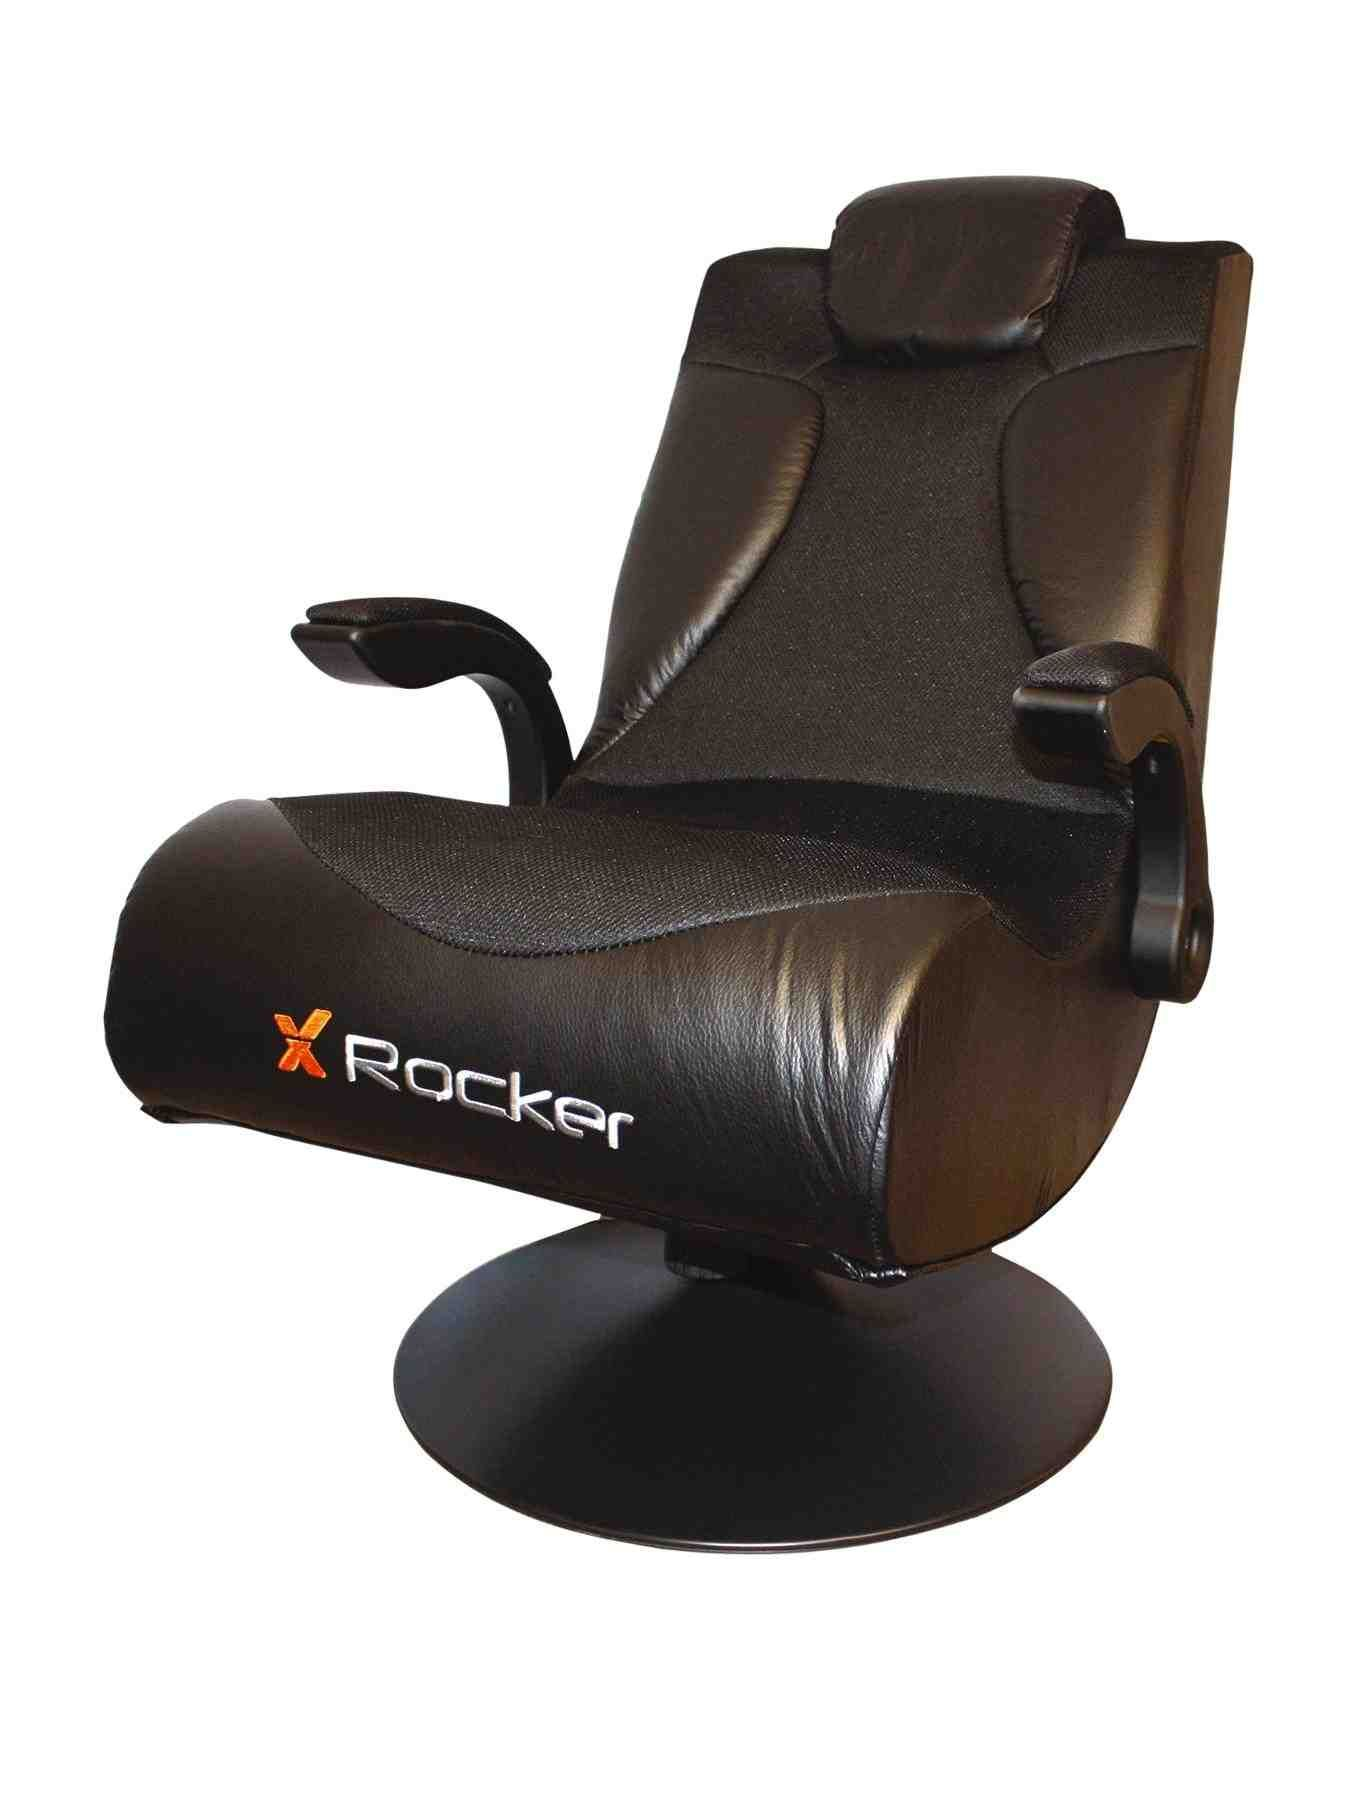 Remarkable Pyramat Wireless Gaming Chair Tv Gaming Chair Gaming Gamerscity Chair Design For Home Gamerscityorg